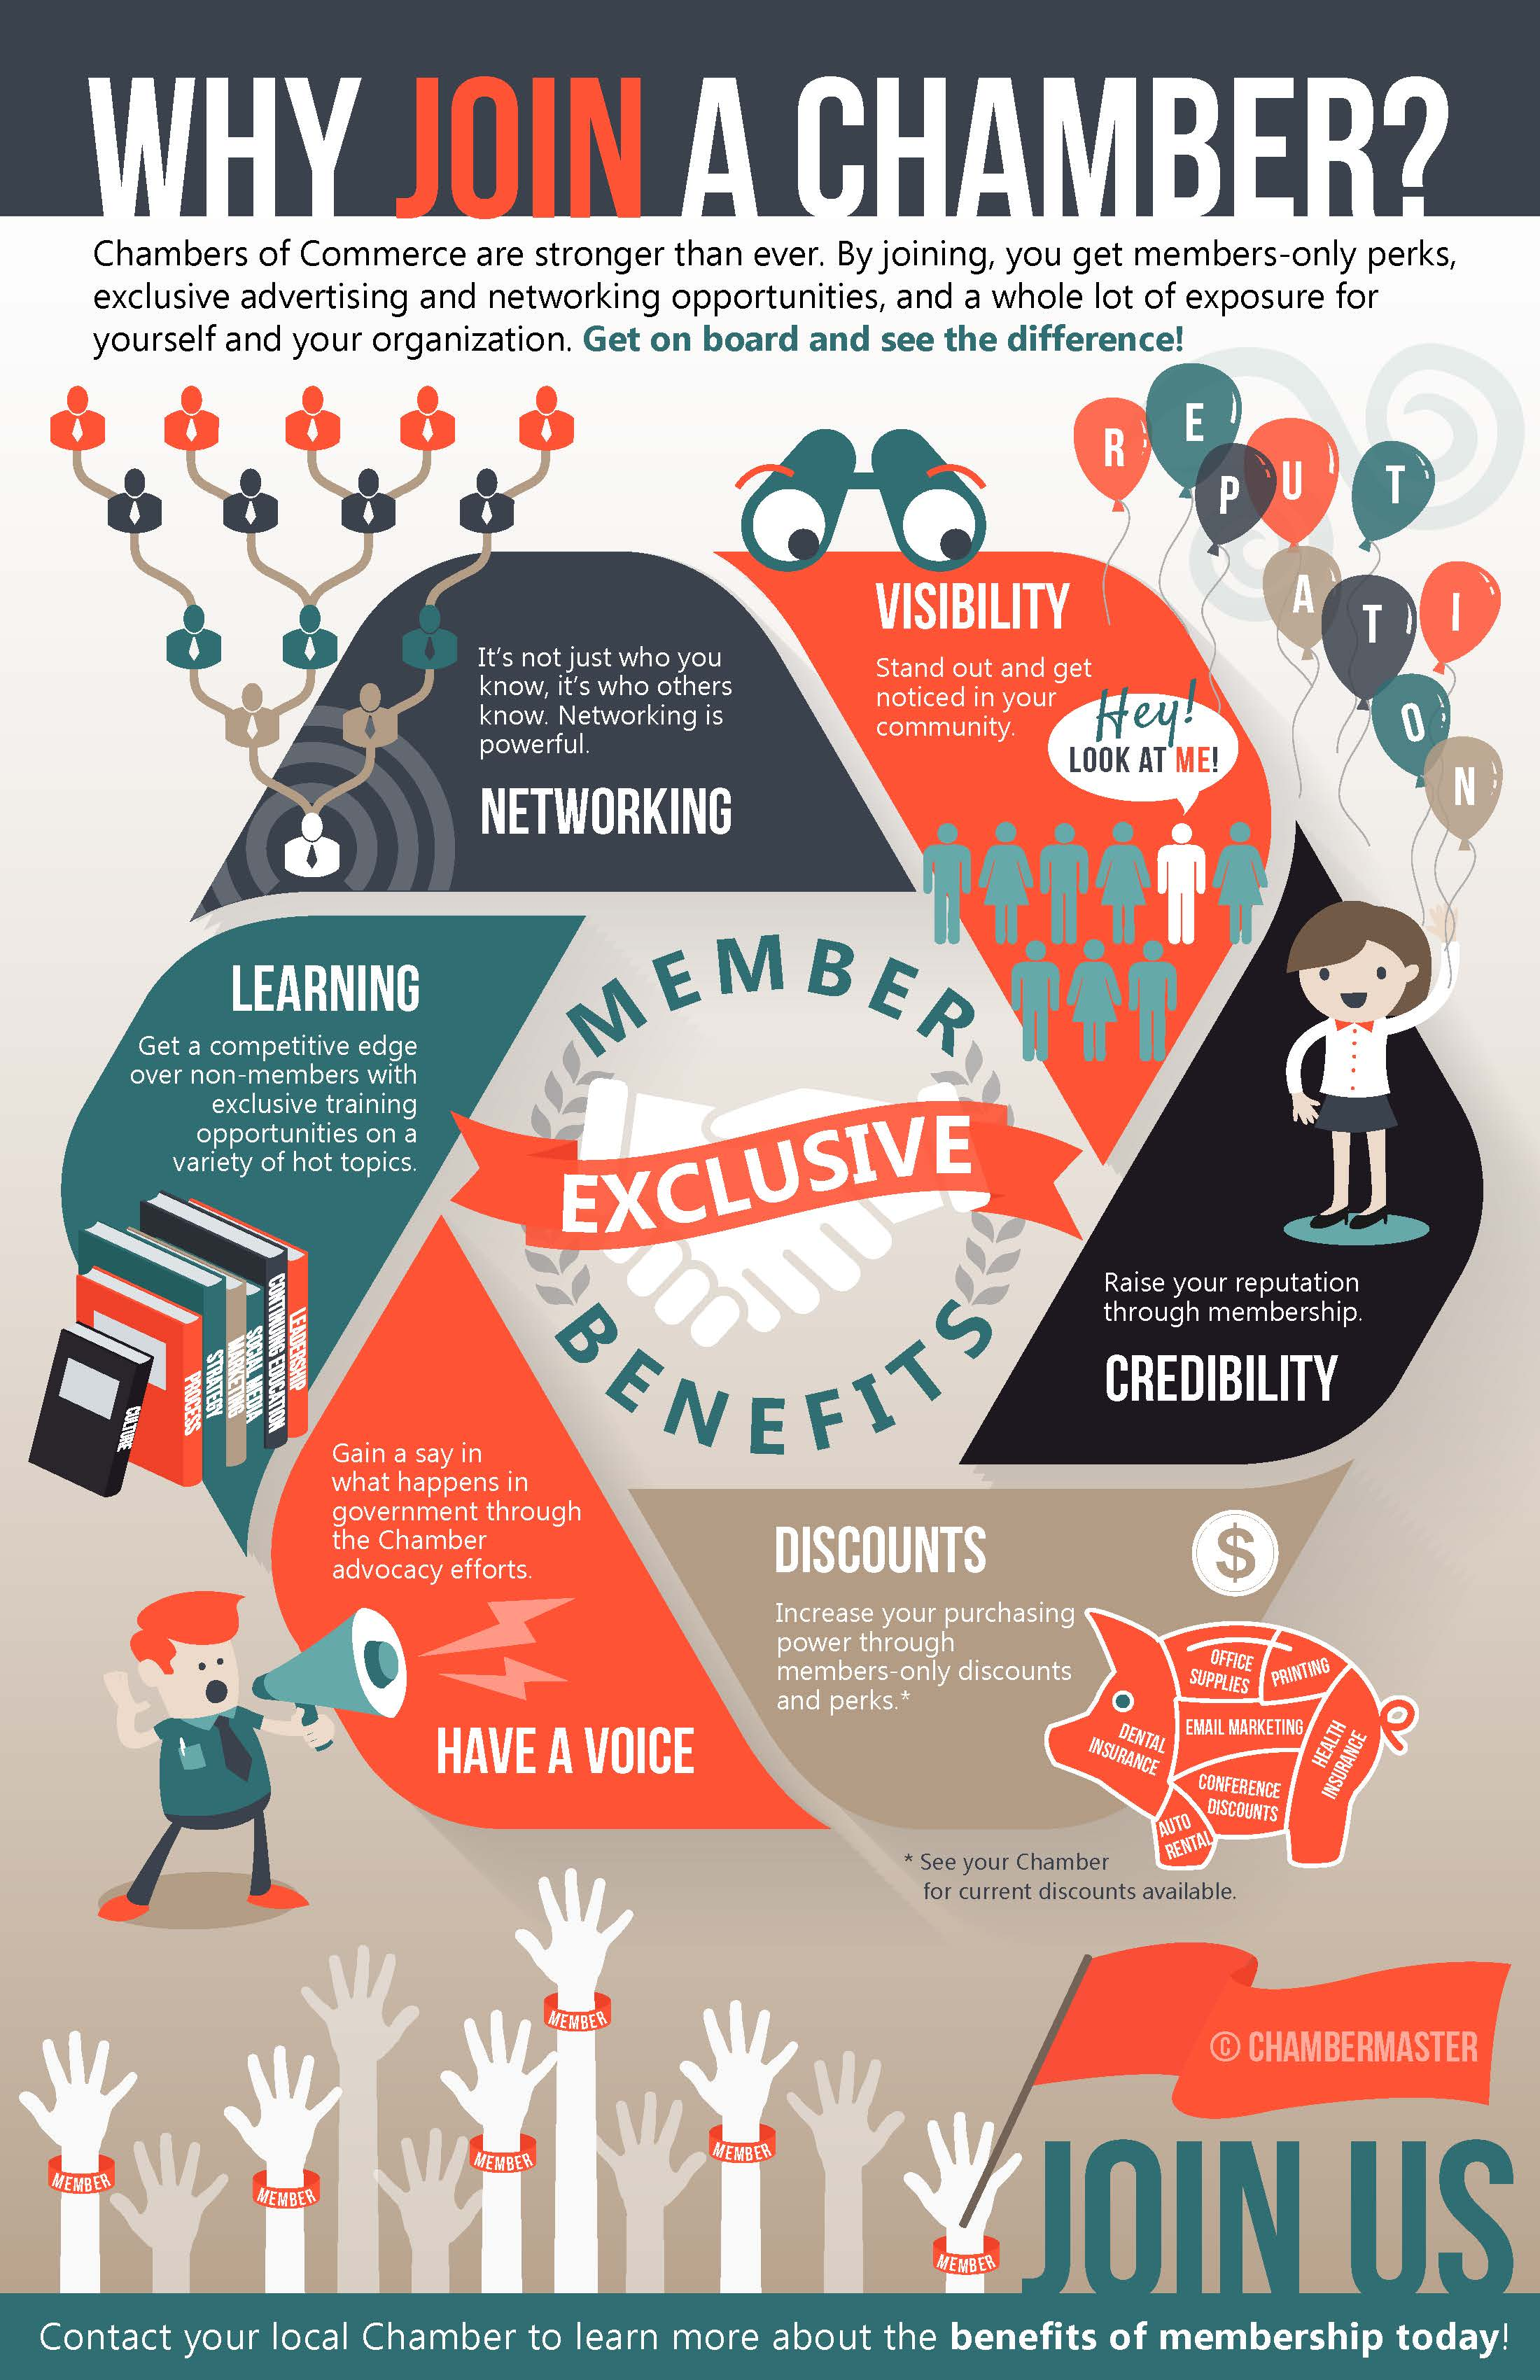 Why Join a Chamber? Infographic